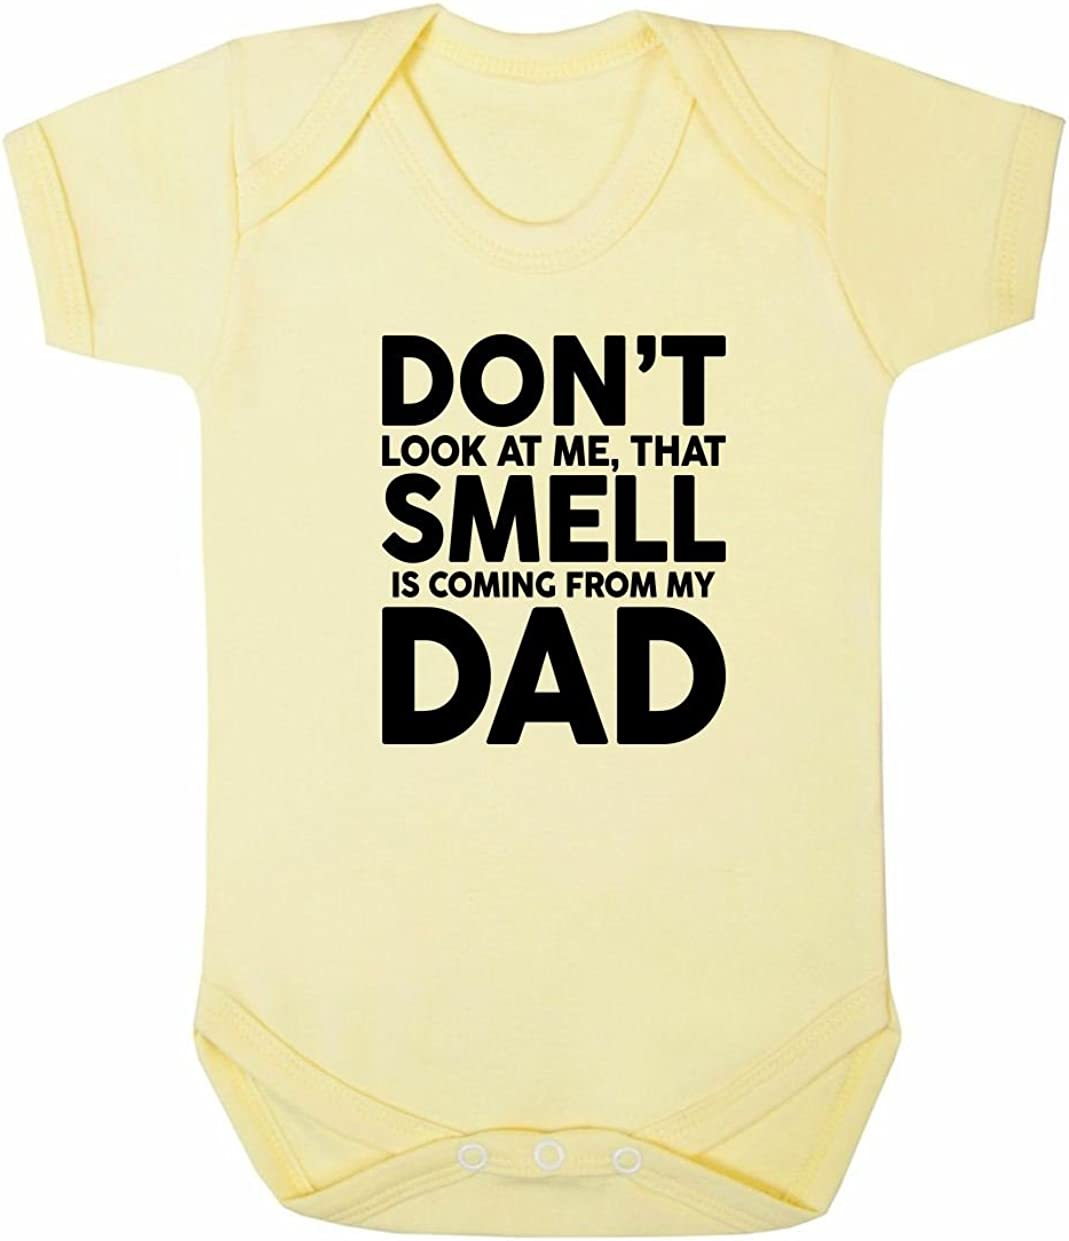 Toddler//Kids Sweatshirt Pretty Sure That Smell Came from My Papa